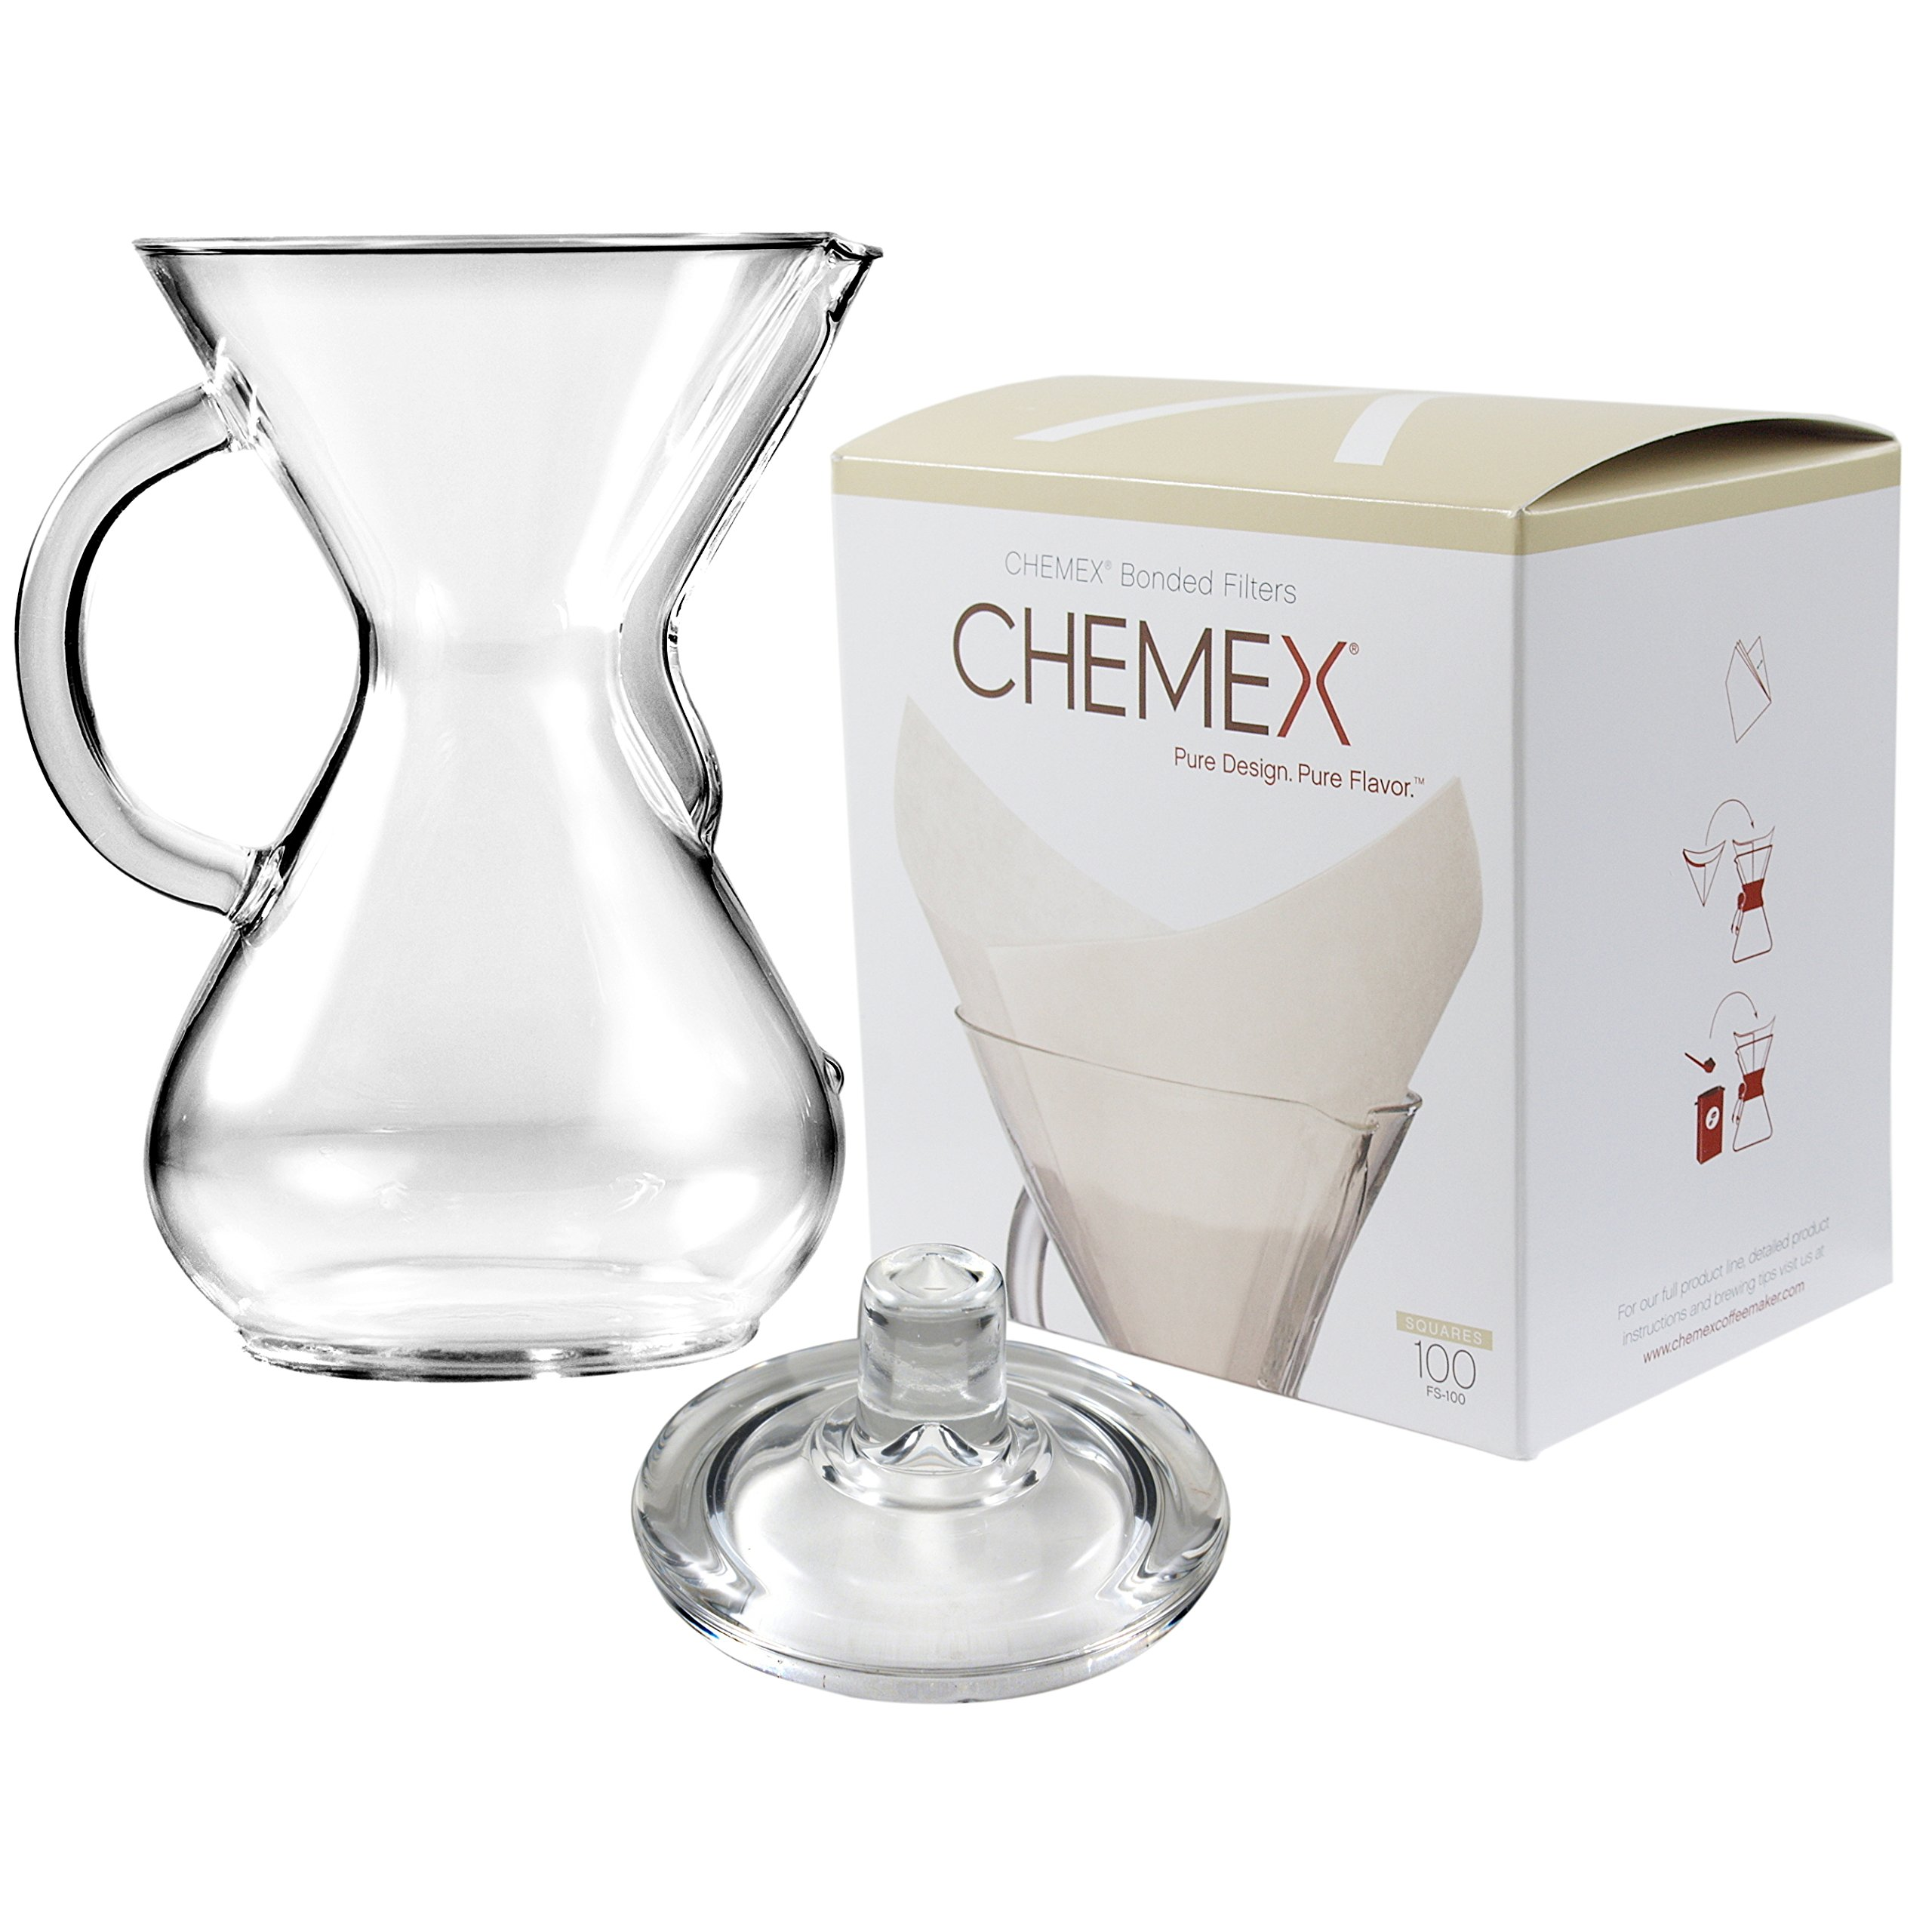 Chemex Glass 40 Ounce Coffee Maker with Cover and 100 Count Oxygen Cleansed Bonded Square Coffee Filters